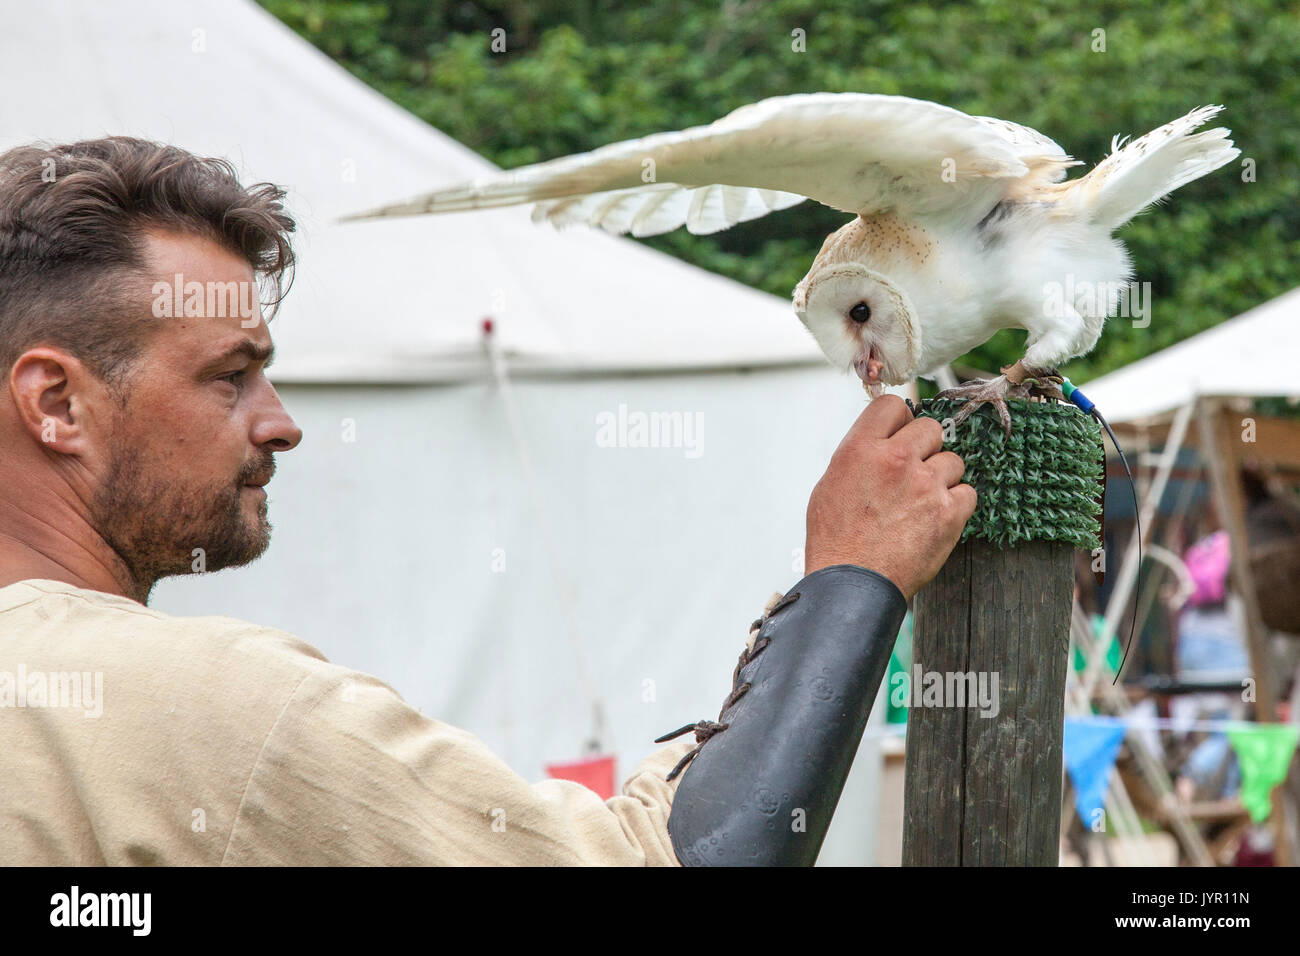 Bird of Prey Demonstration featuring a Barn Owl - Stock Image